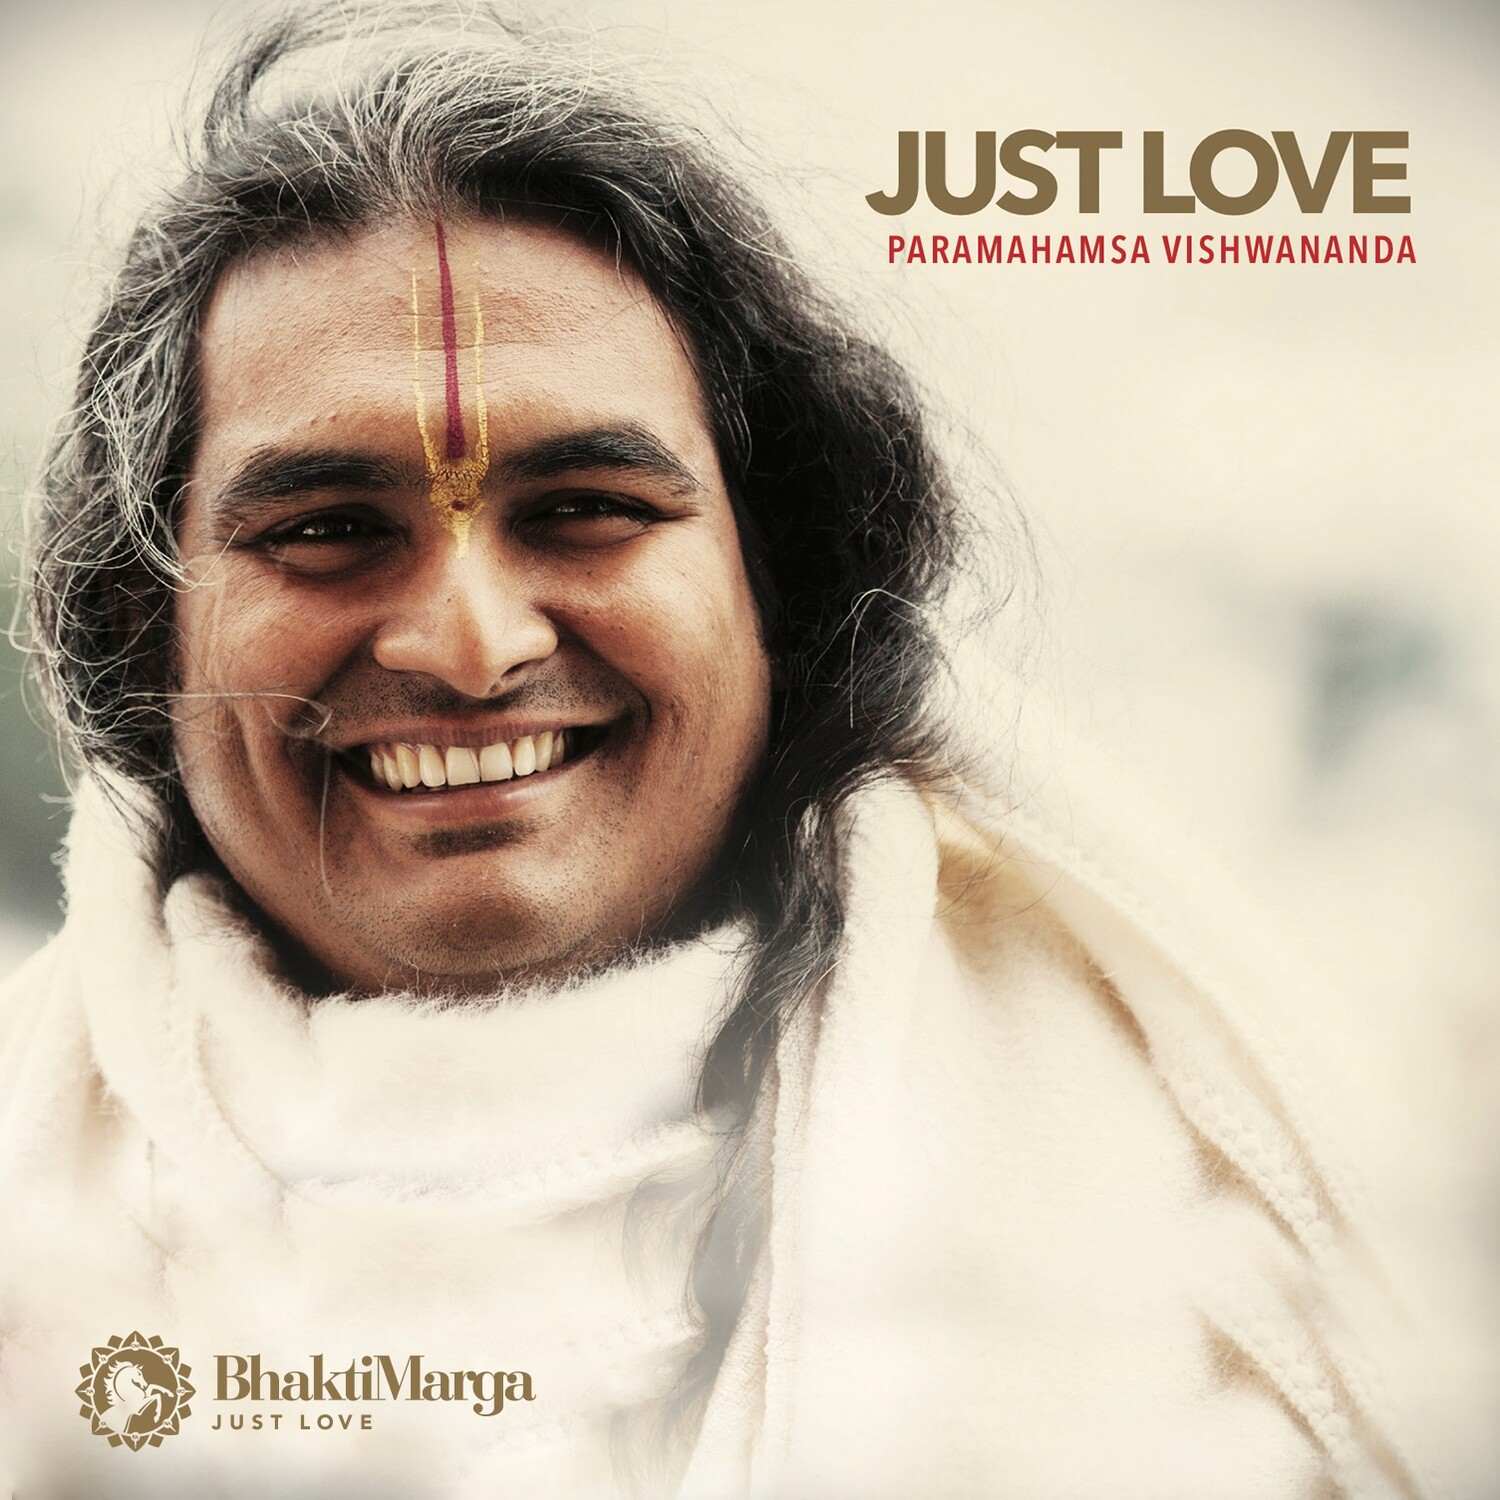 Just Love CD - Sri Swami Vishwananda